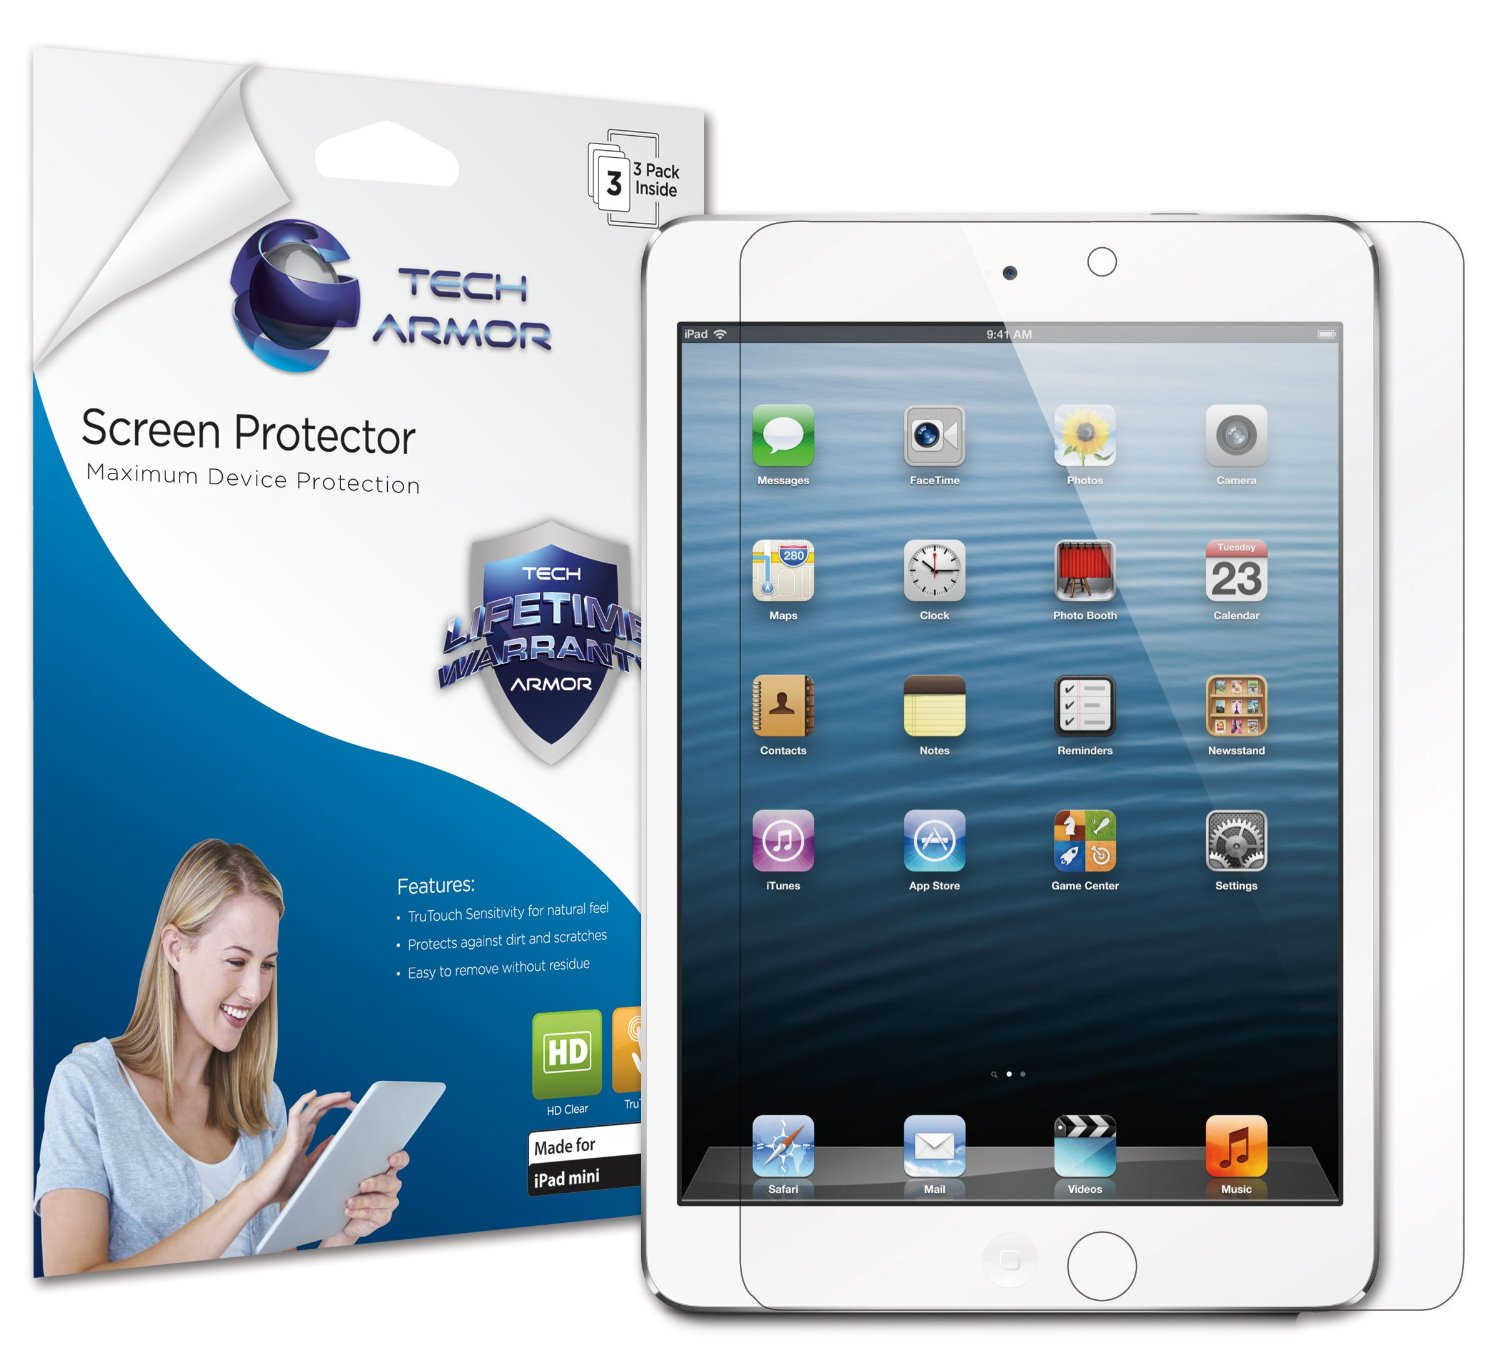 Tech Armor iPad Mini screen